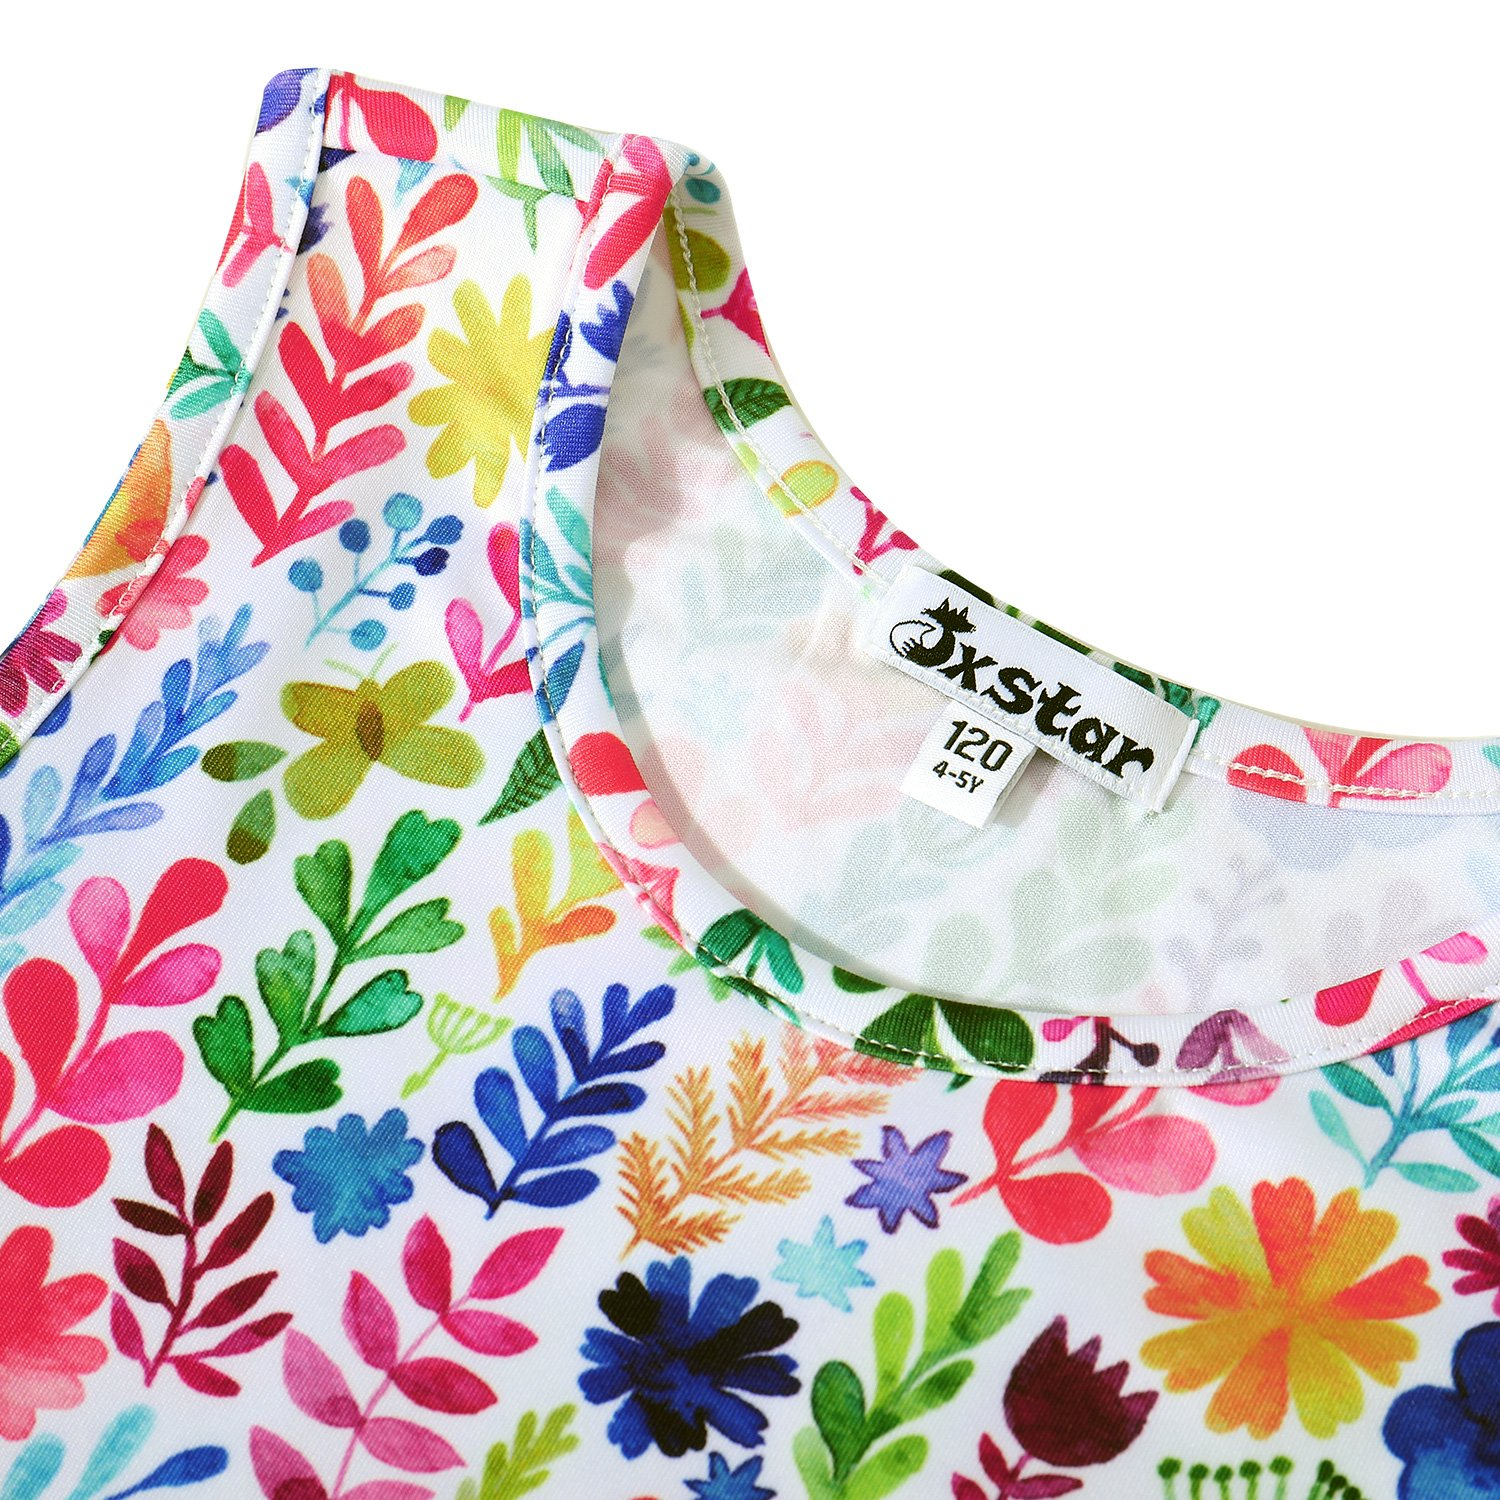 Jxstar Girl Casual Dress Flower Summer Floral Printed Sleeveless Holiday Little by Jxstar (Image #3)